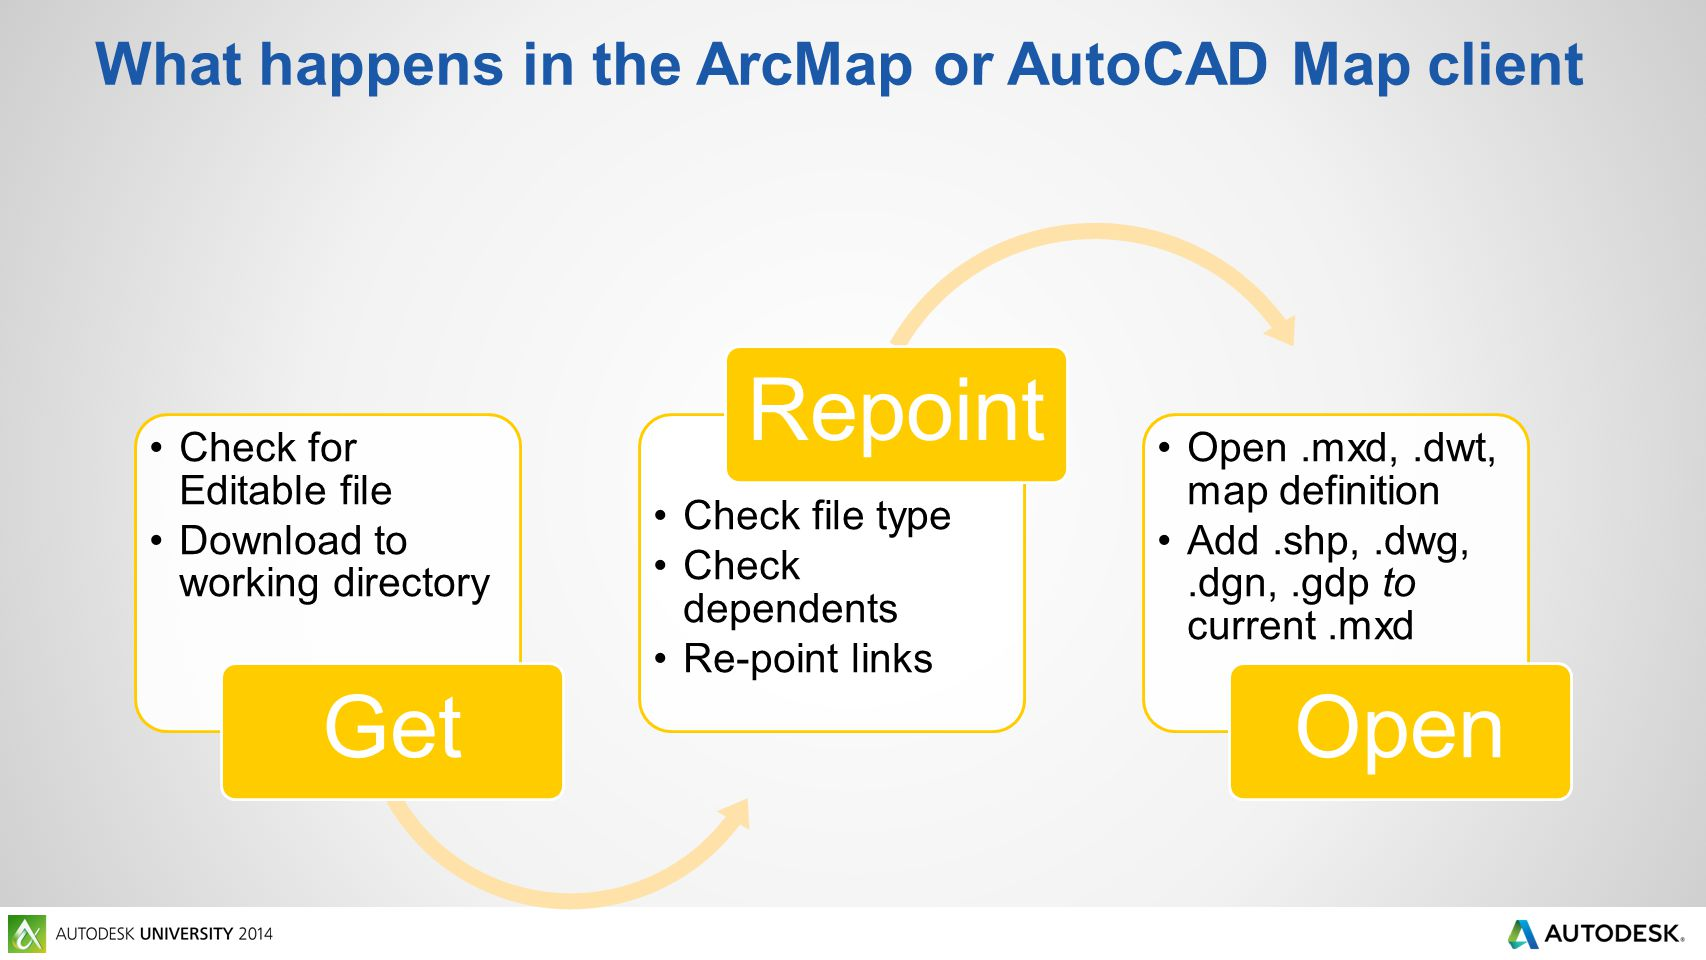 What happens in the ArcMap or AutoCAD Map client Check for Editable file Download to working directory Get Check file type Check dependents Re-point links Repoint Open.mxd,.dwt, map definition Add.shp,.dwg,.dgn,.gdp to current.mxd Open